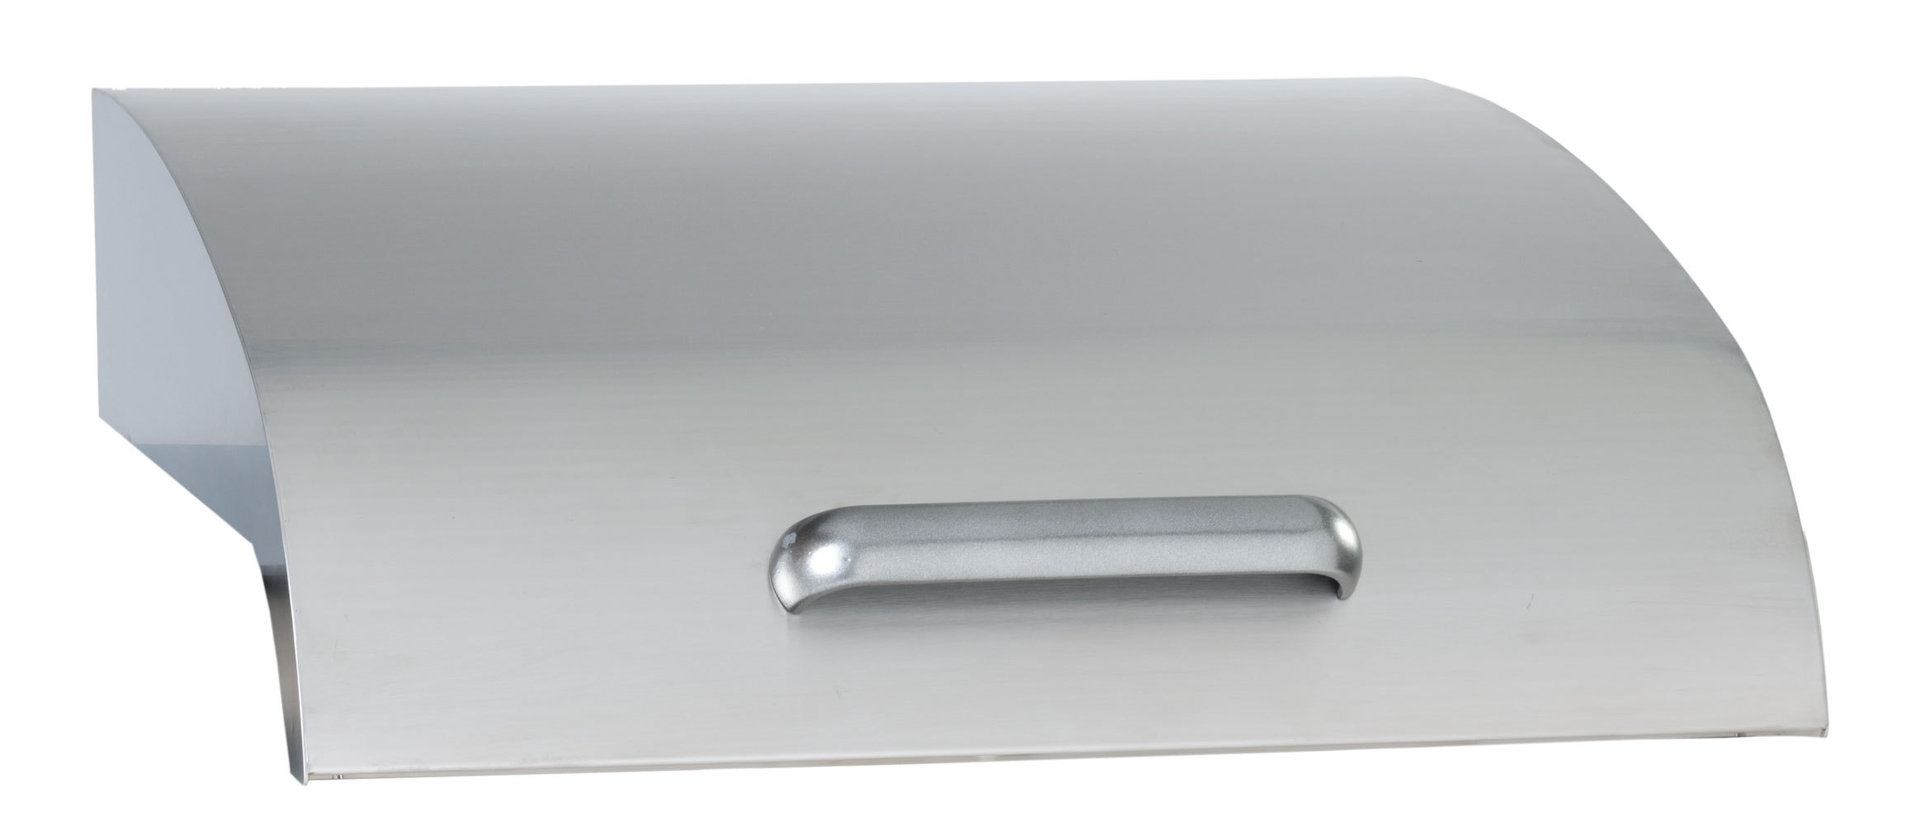 Stainless steel hood for innova planchas the bbq